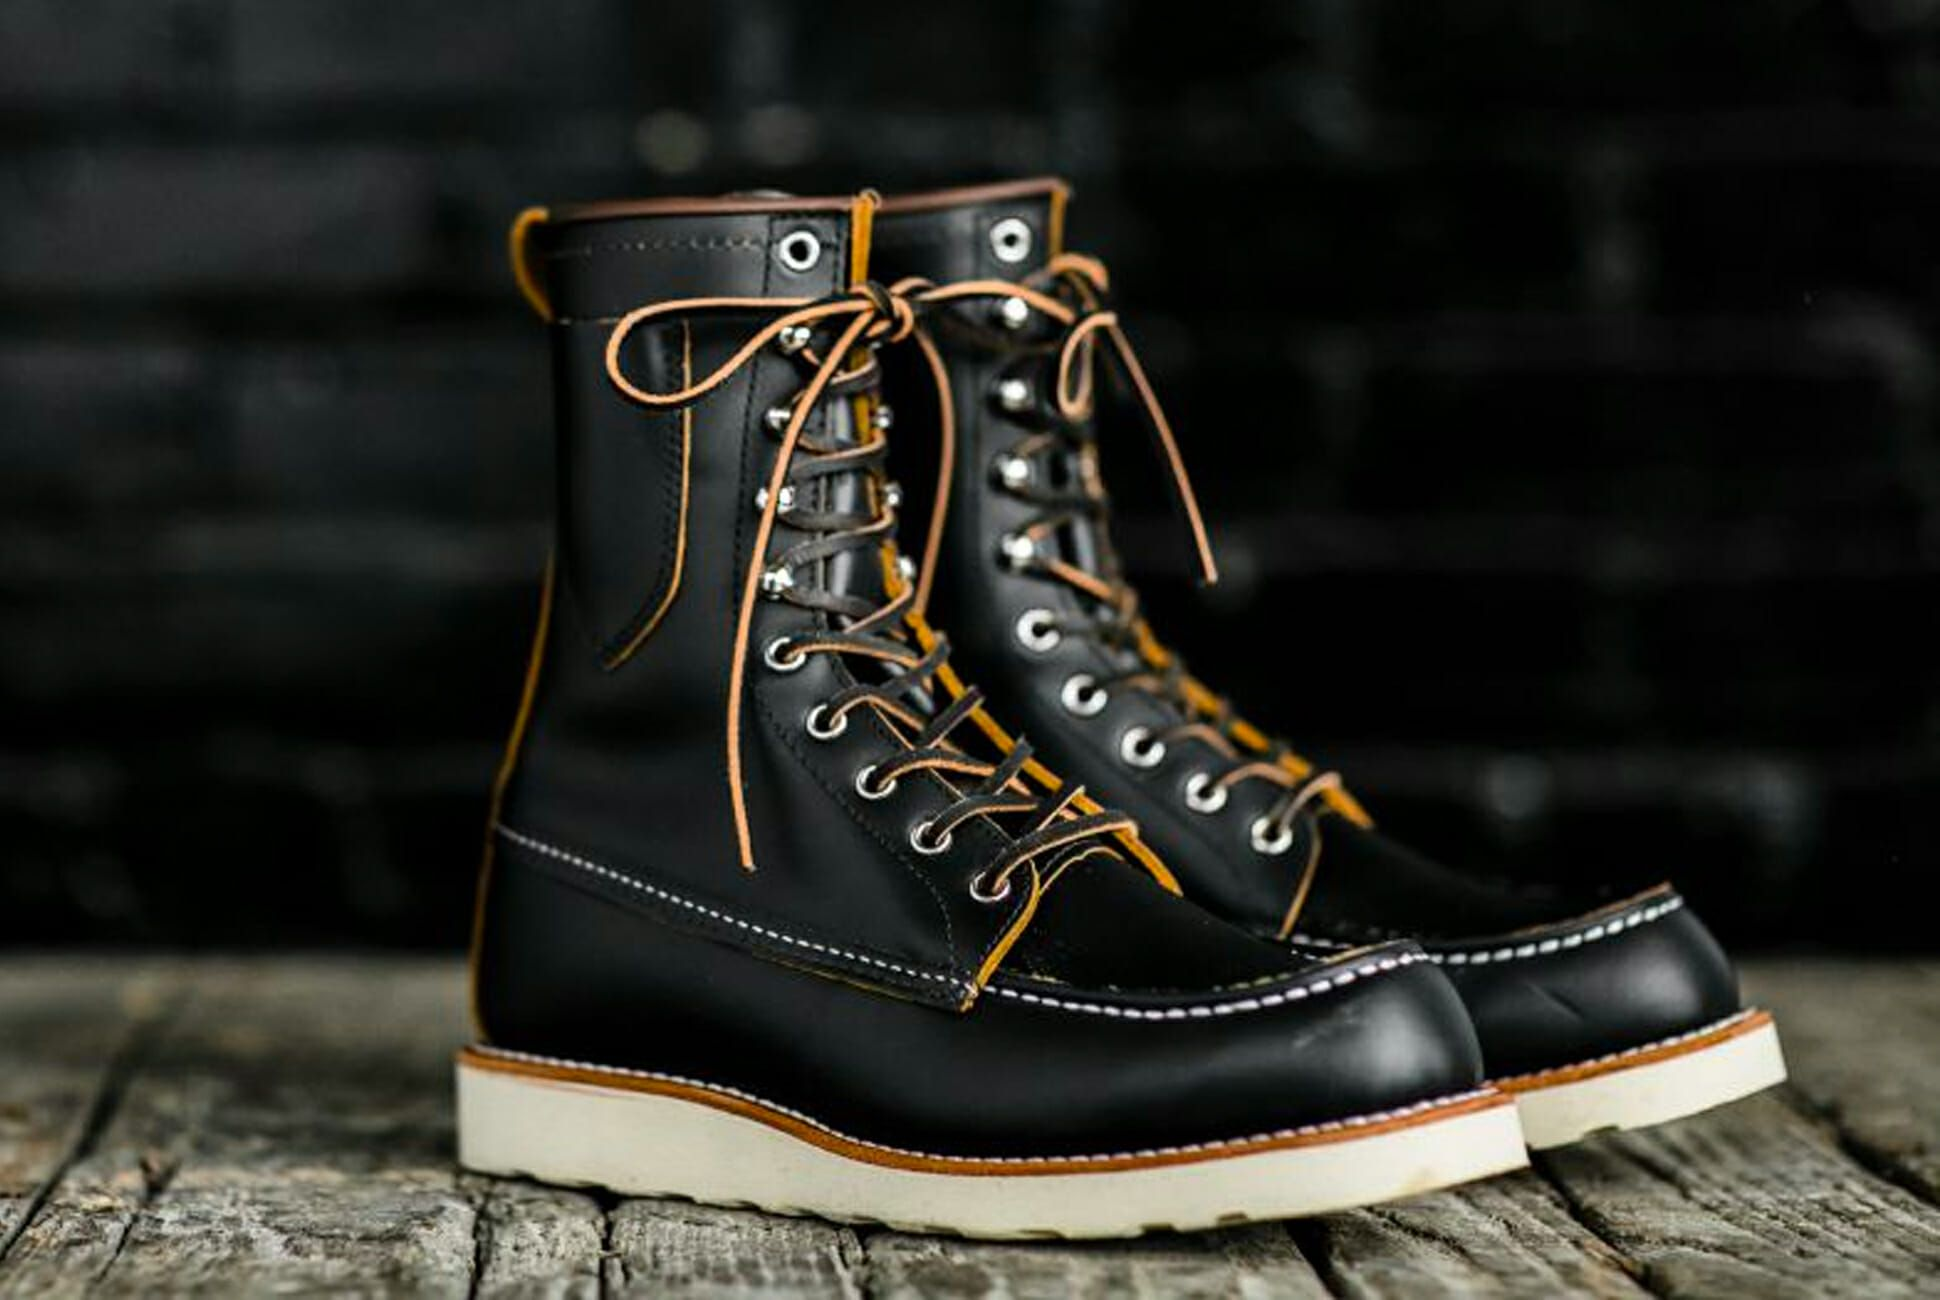 These Archival Red Wing Heritage Boots